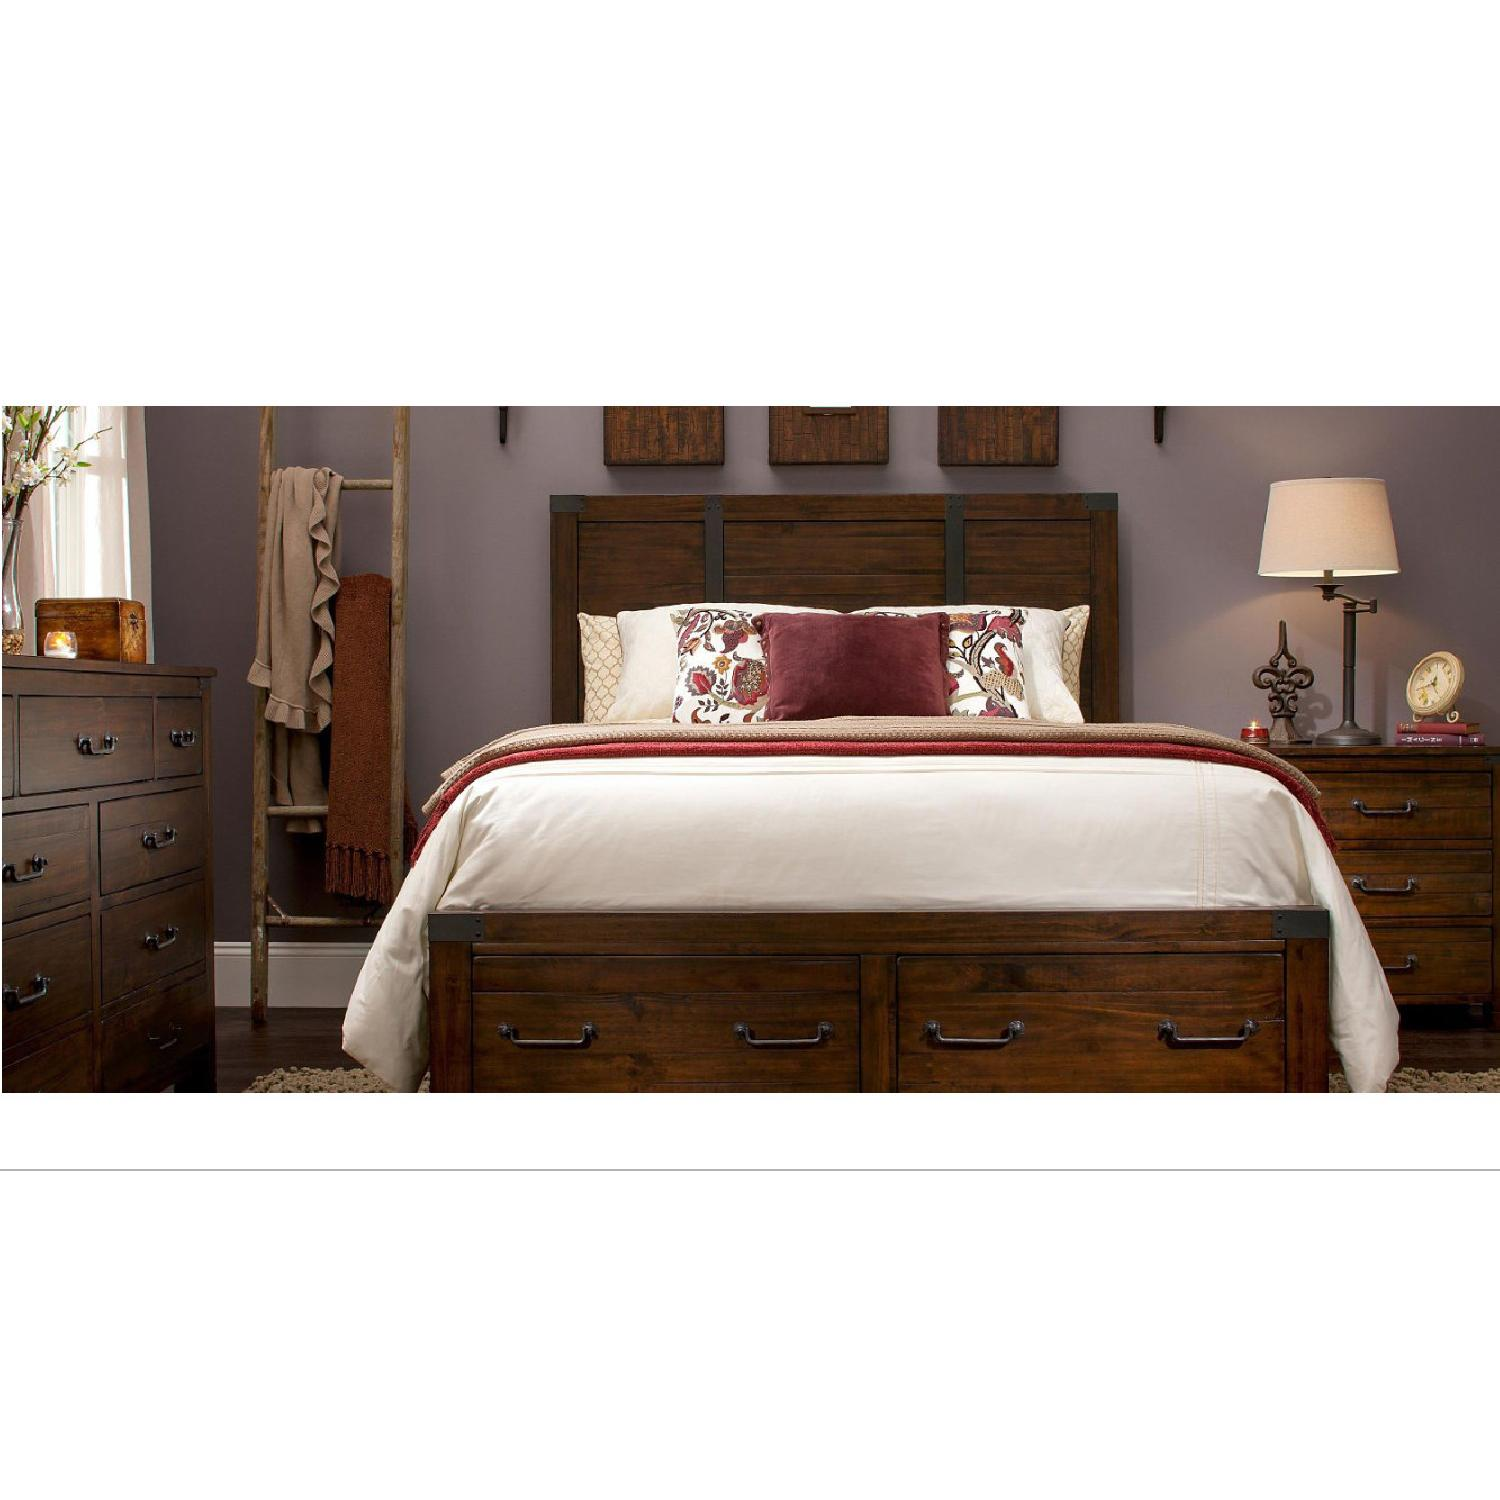 Raymour & Flanigan Shelton Queen Storage Bed in Rustic Pine - image-0